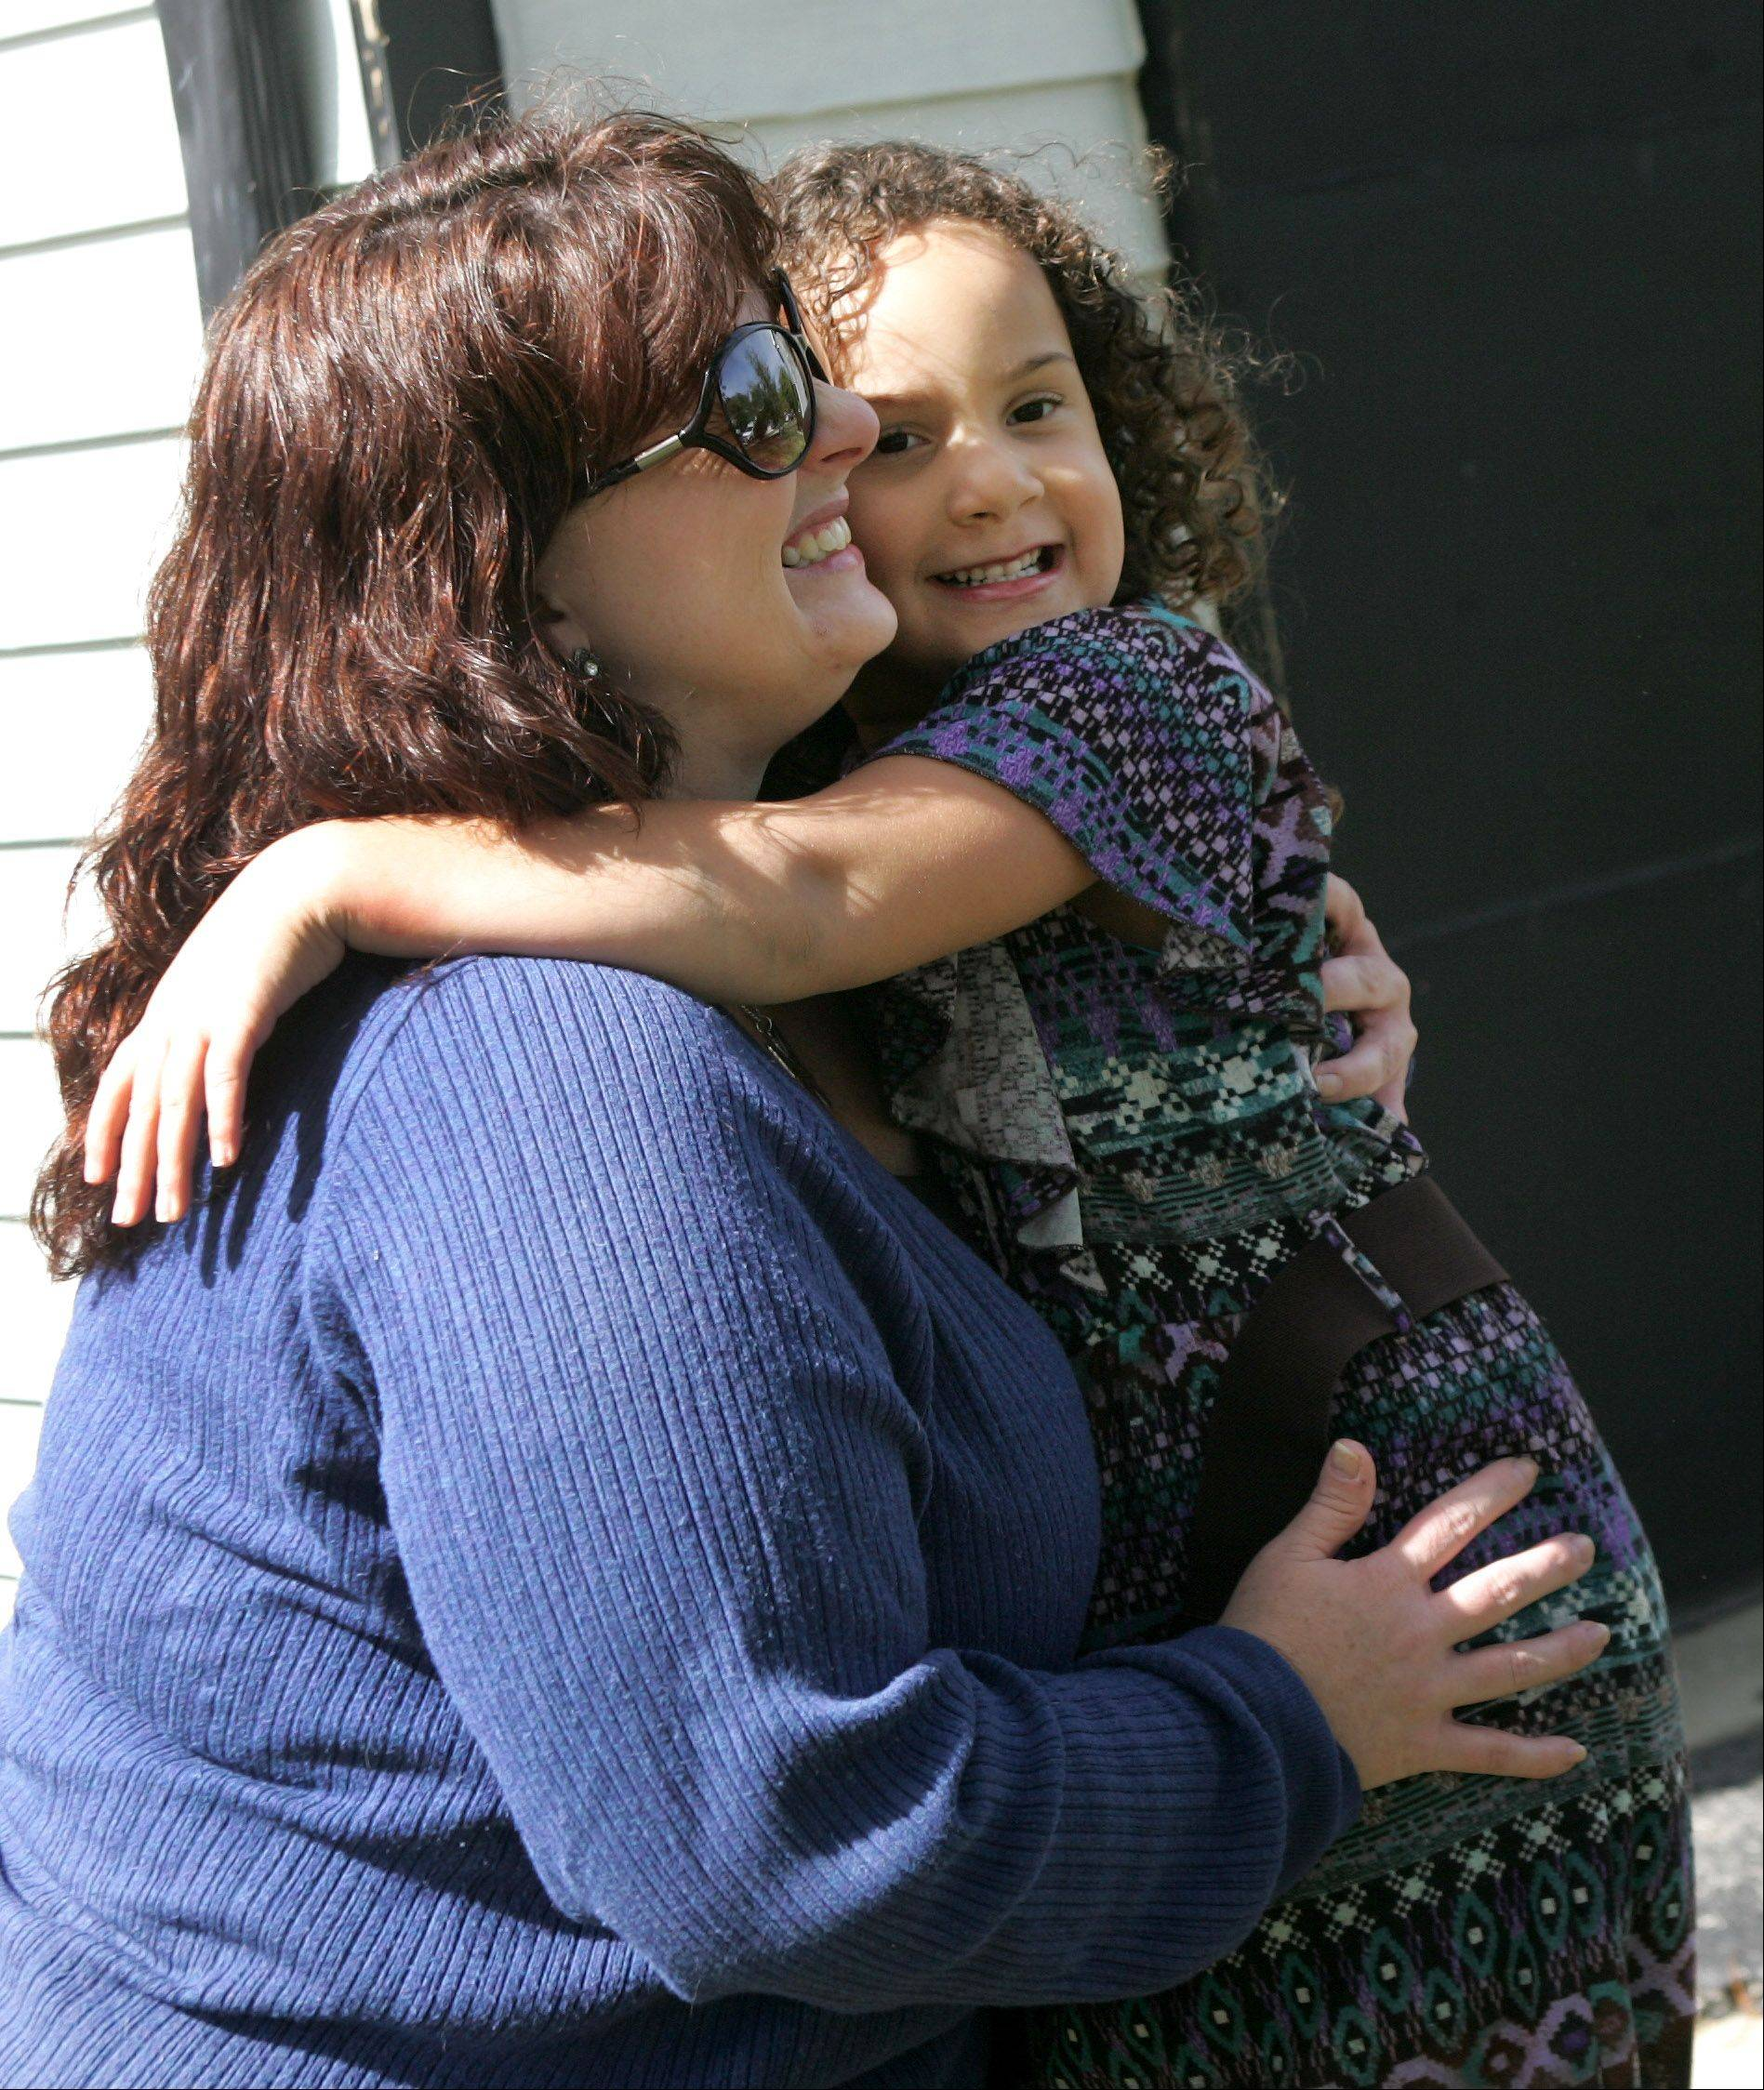 Diana Jensen of Aurora hugs her daughter, Livia, 4, Wednesday before the two met the Aurora 911 operator who responded to Livia's call and dispatched assistance to their home. Livia called 911 because Jensen, who has Lupus, suddenly felt intense pain and was unable to speak.